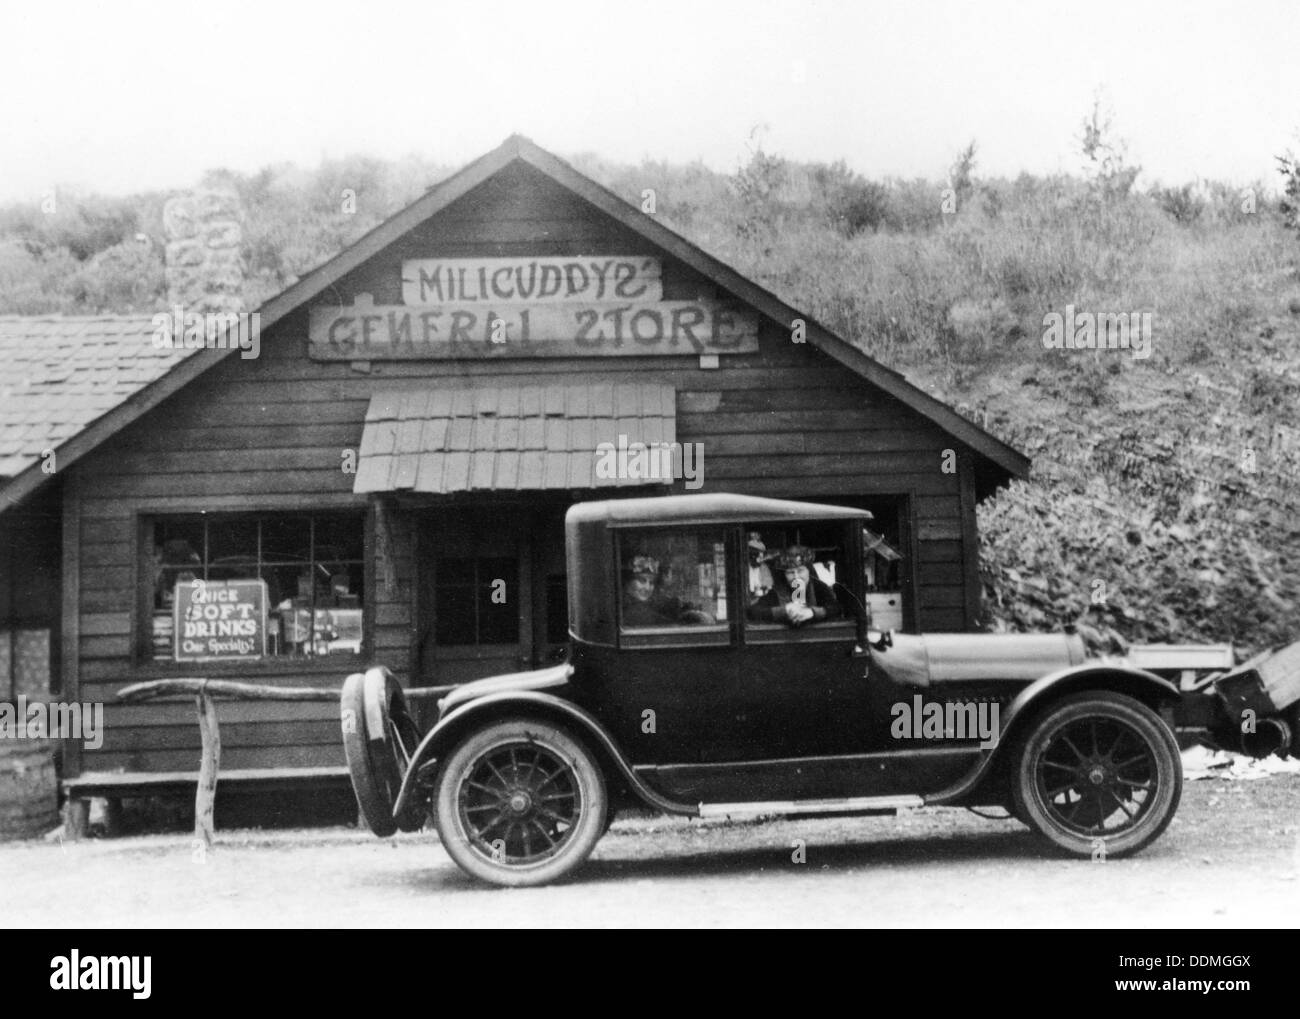 1916 Cadillac V8 car, parked outside a general store, USA, (c1916?). - Stock Image